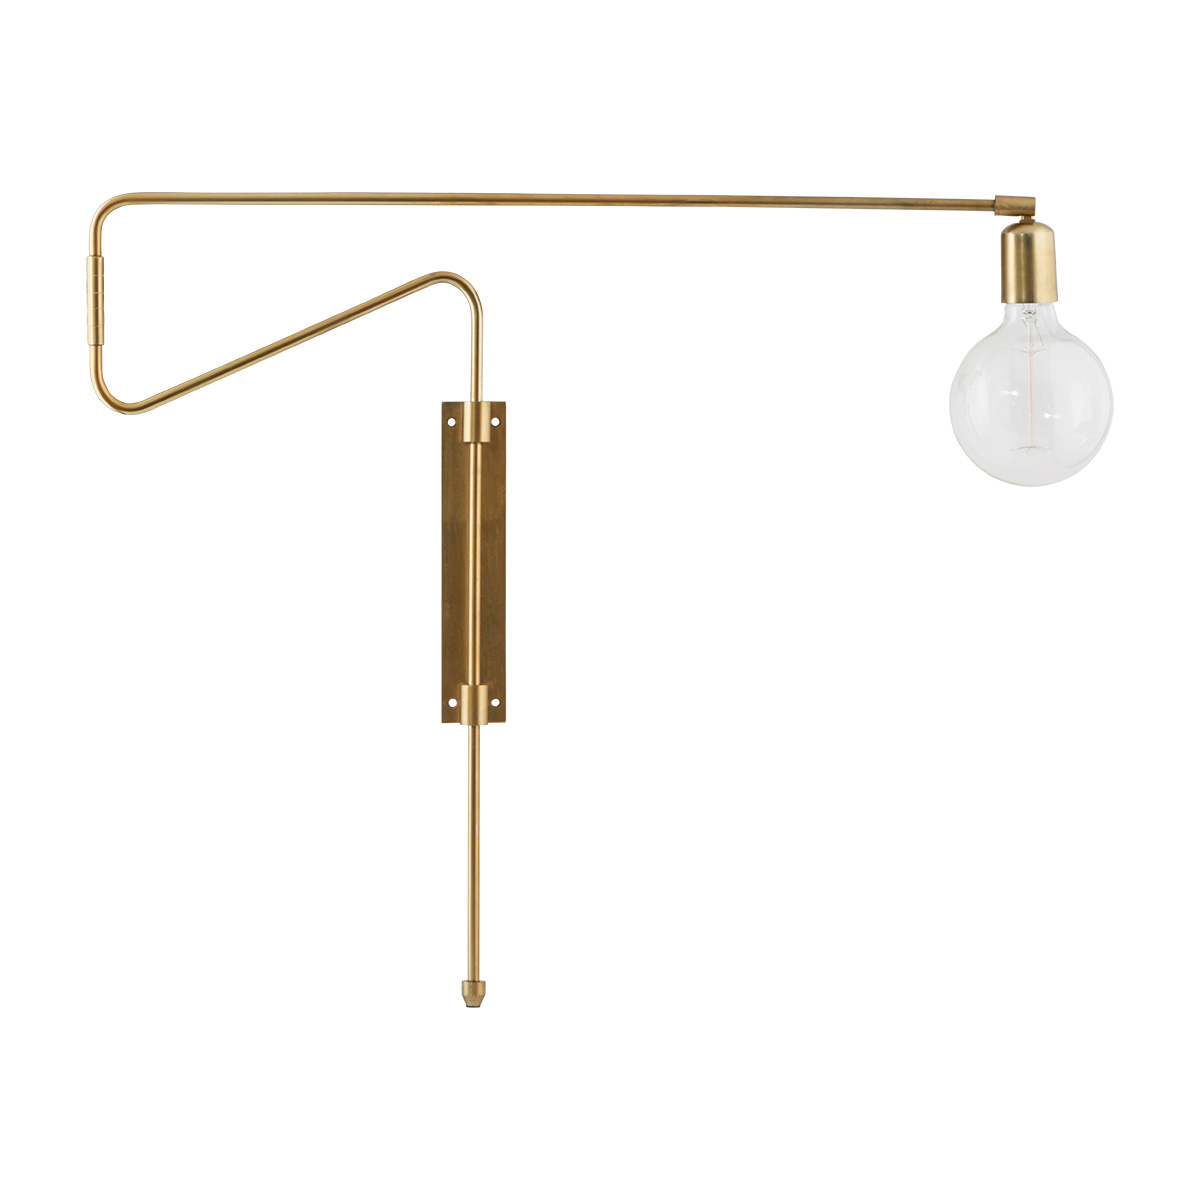 House Doctor Brass Wall Lamp SWING - L70cm - House Doctor